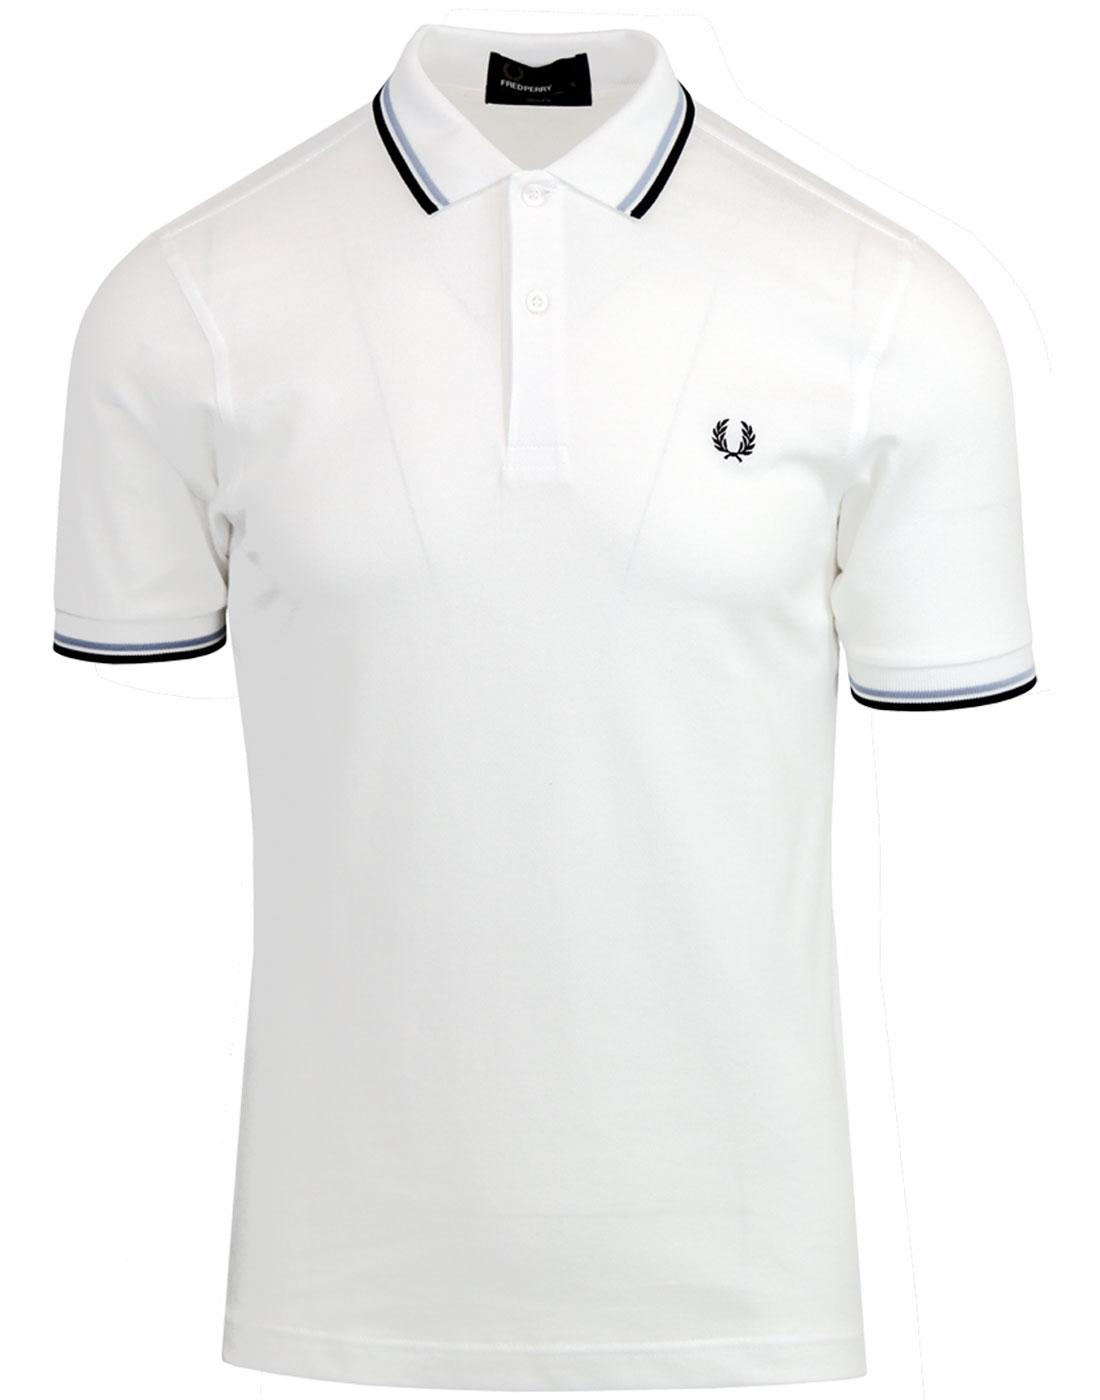 FRED PERRY M3600 Mod Twin Tipped Polo Shirt White